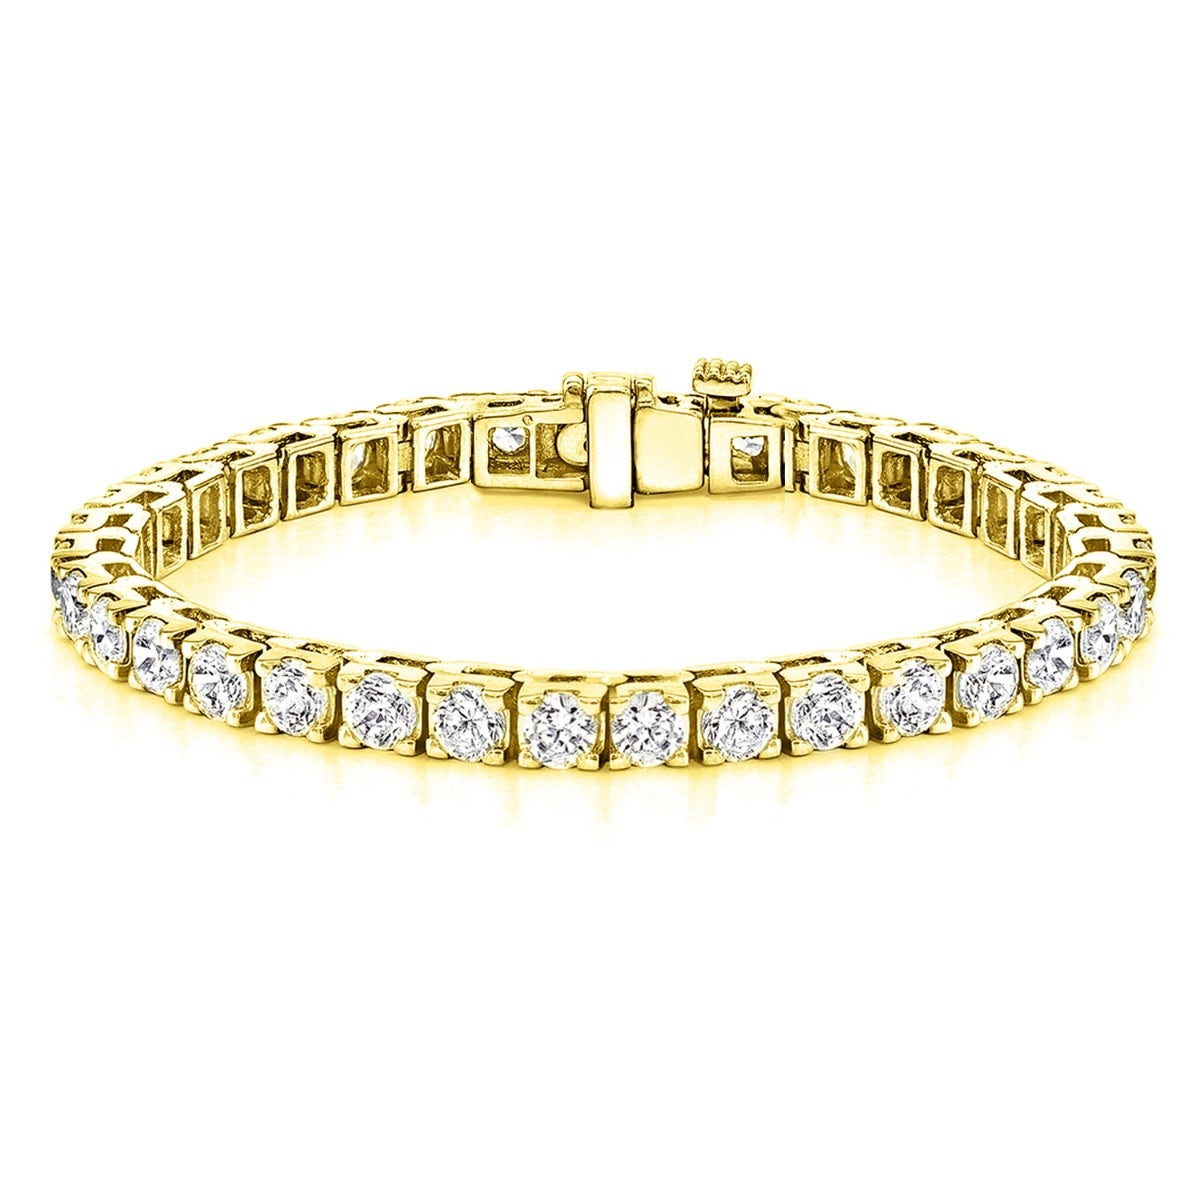 14ctw 4 Prong Square Link Diamond Tennis Bracelet In 14k Yellow Gold Hi Vs1 Vs2